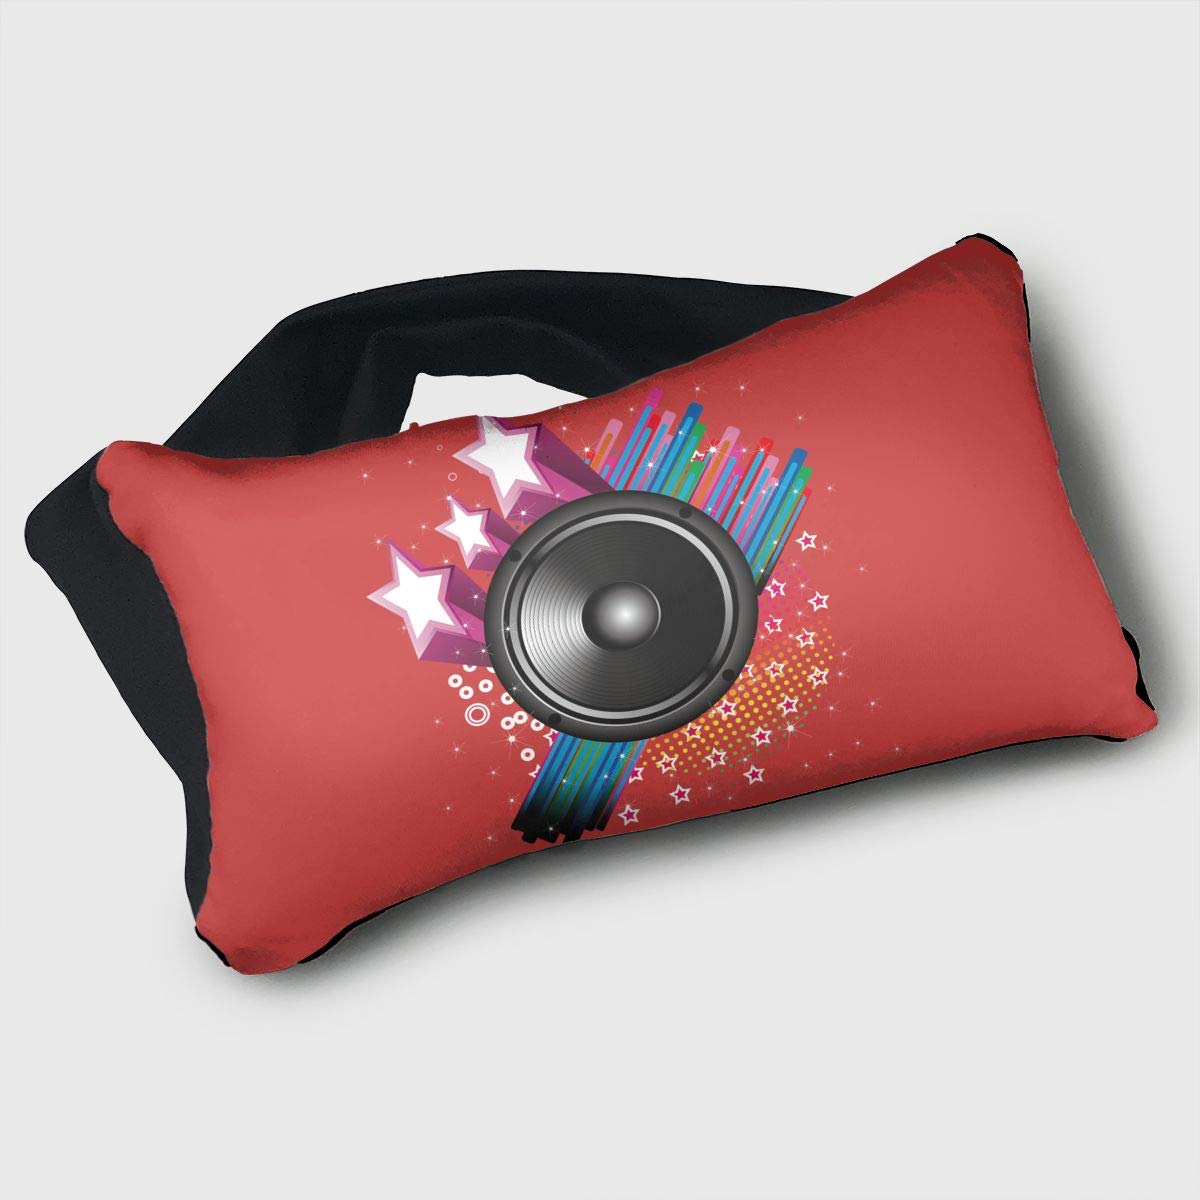 Voyage Travel Pillow Eye Mask 2 in 1 Portable Neck Support Scarf Sound Music Guitar Ergonomic Naps Rest Pillows Sleeper Versatile for Airplanes Car Train Bus Home Office